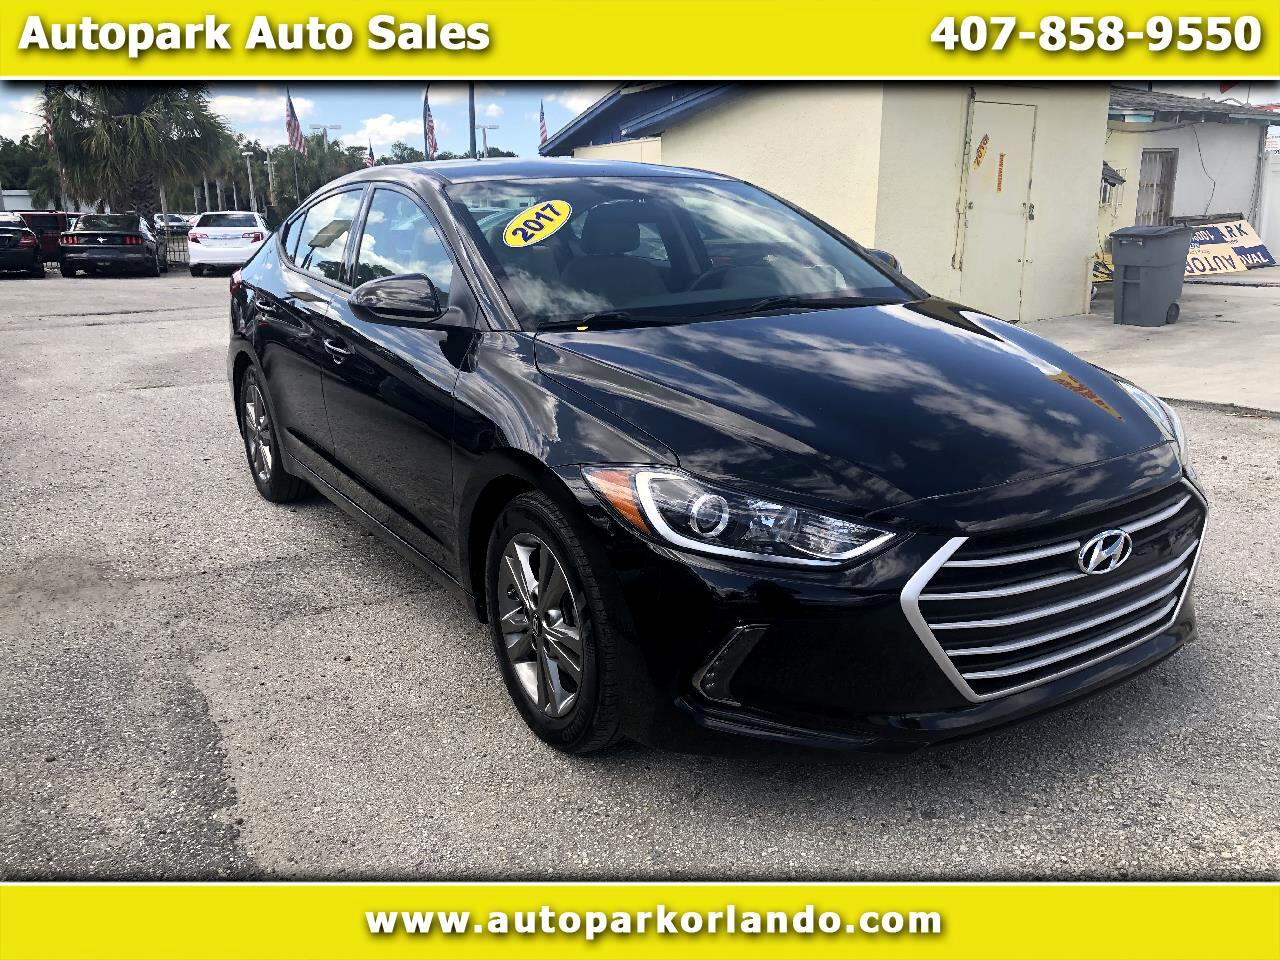 2017 Hyundai Elantra 4dr Sdn Auto Value Edition (Alabama Plant)